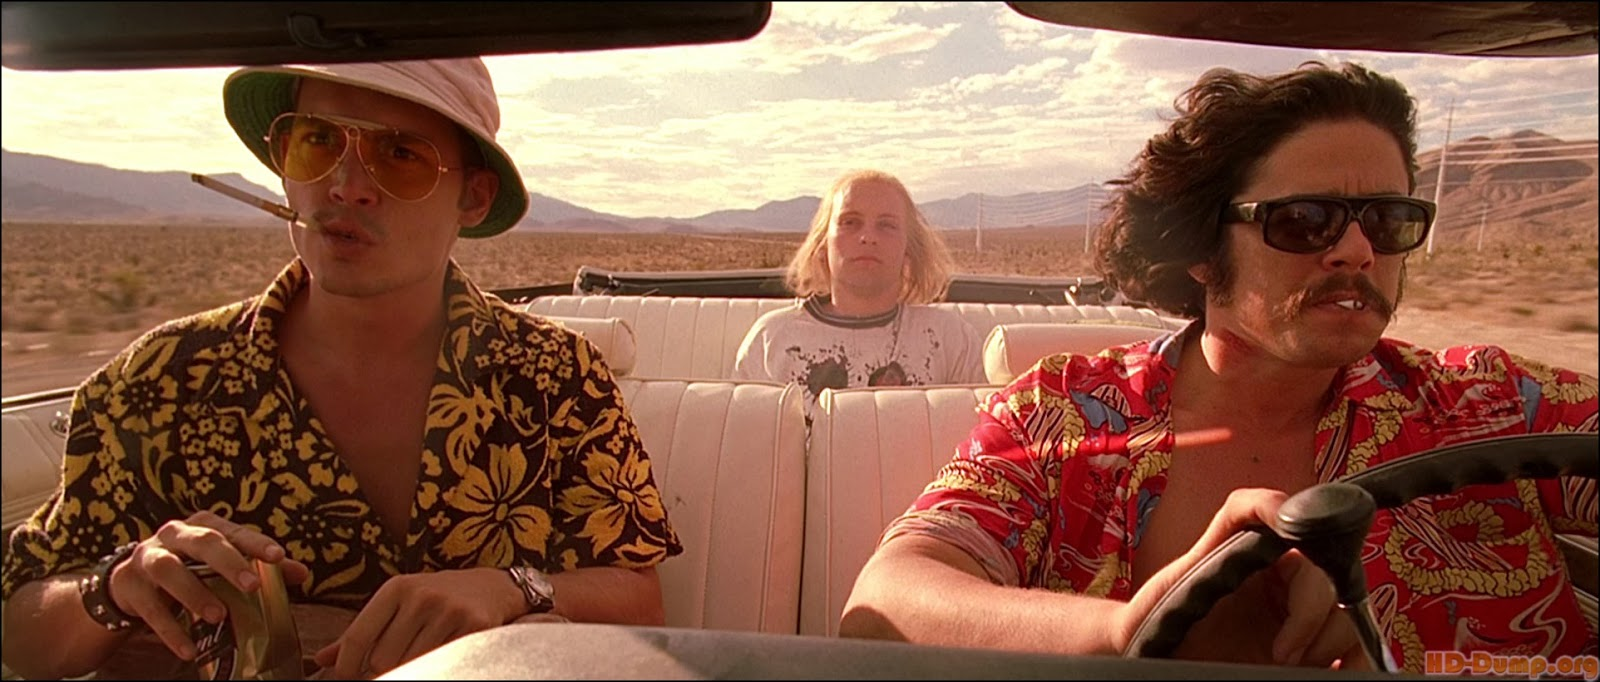 mundanewarrior's Movie Musings: Fear and Loathing in Las Vegas (1998)